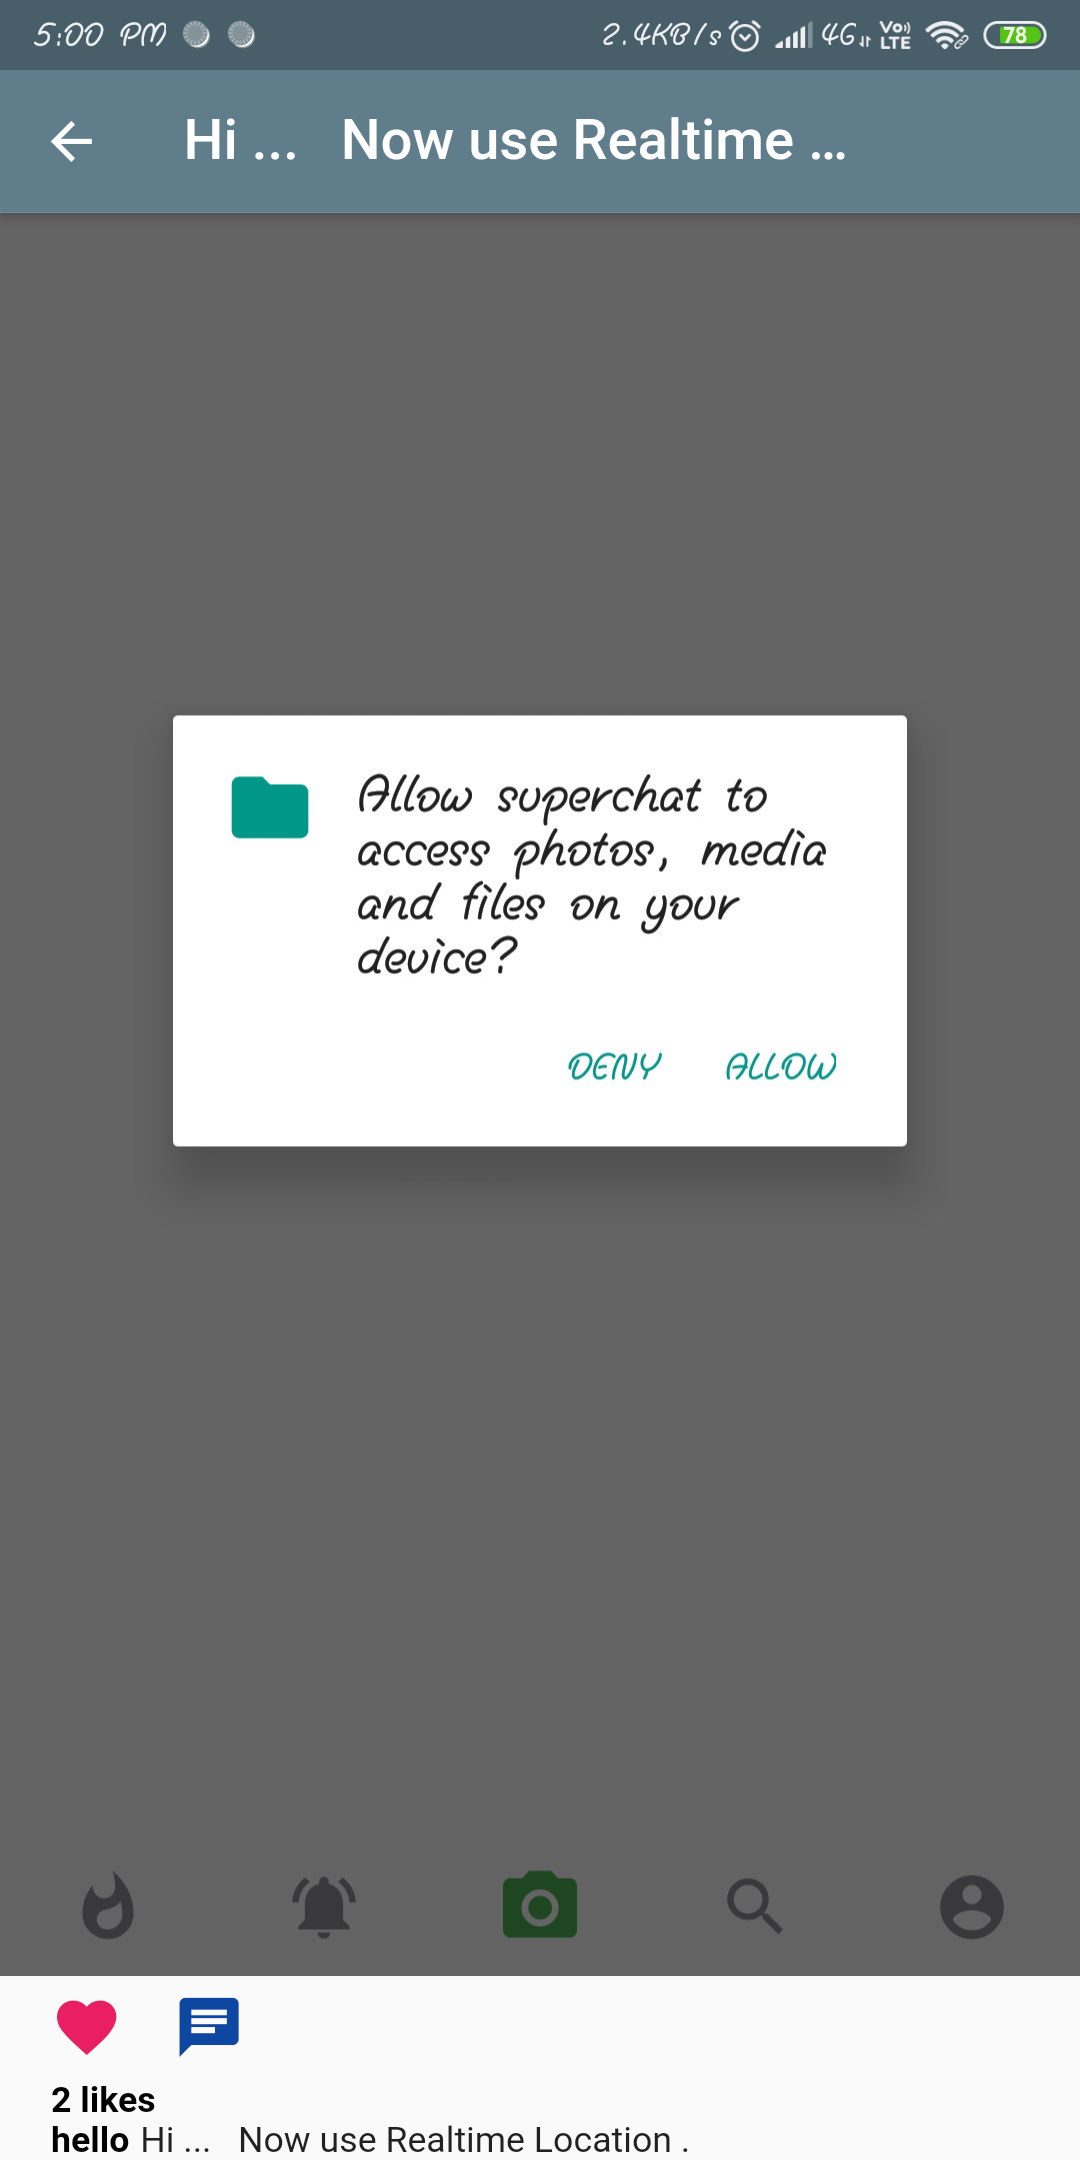 android chat example source code firebase